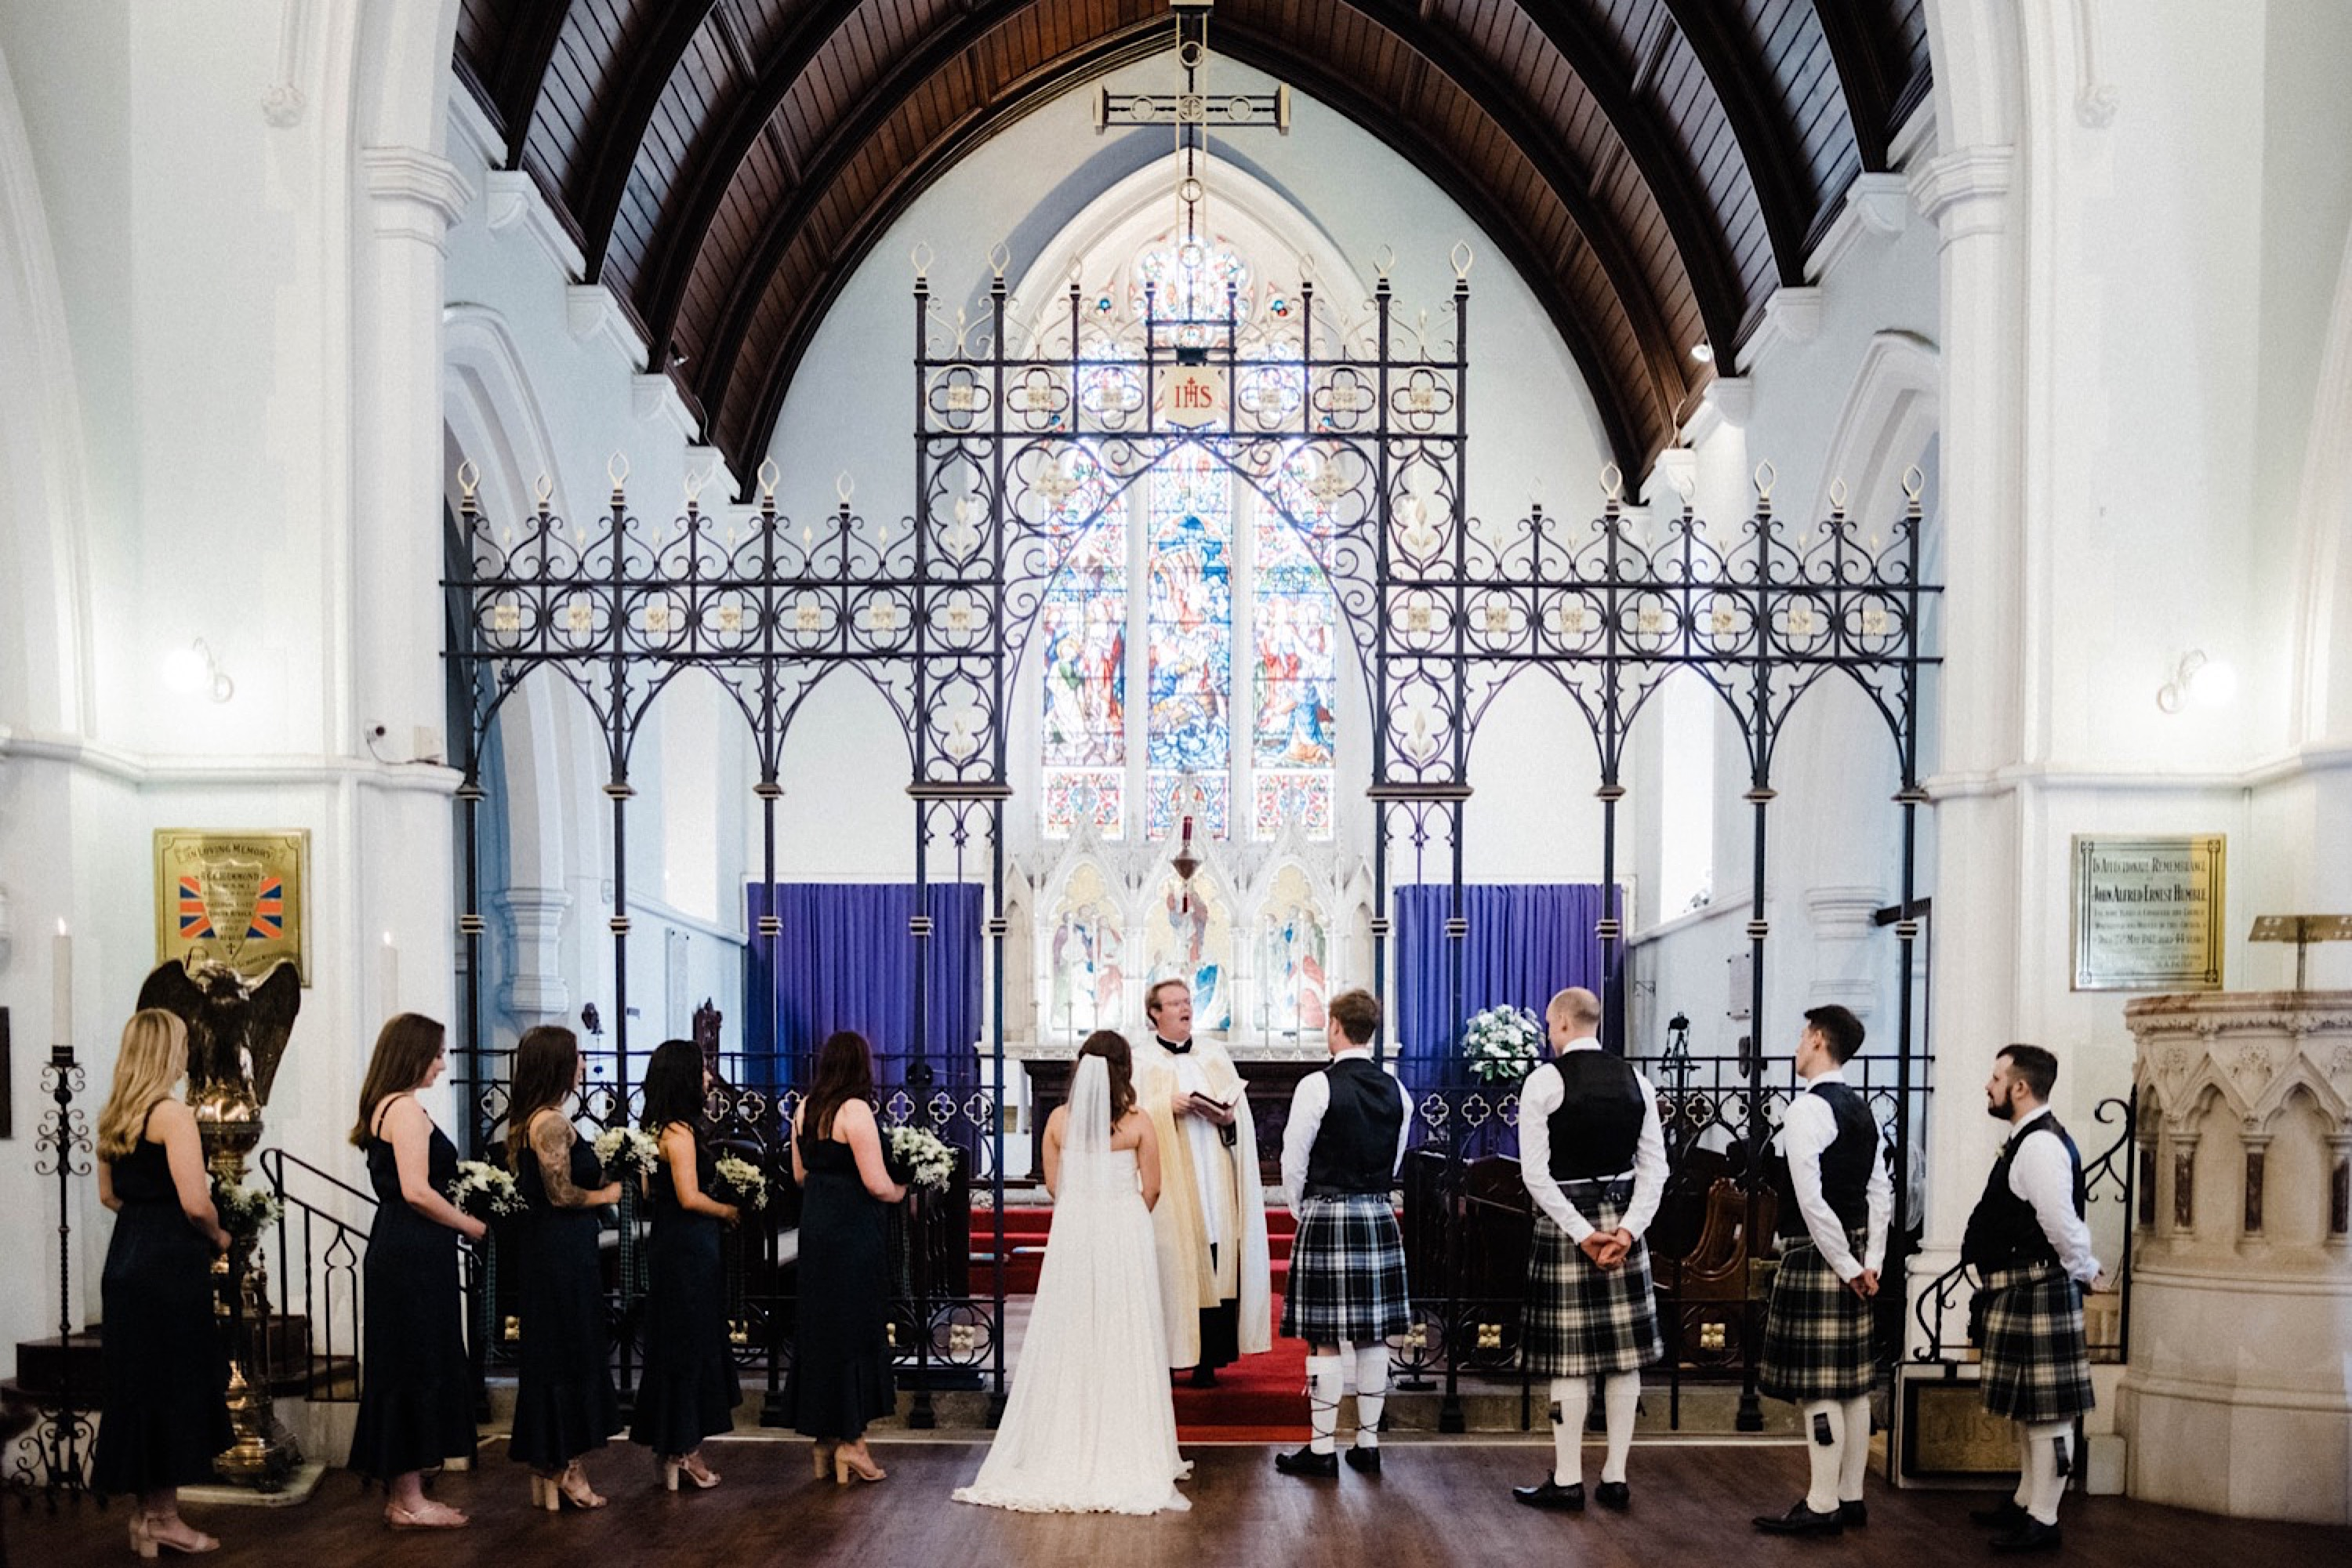 A wide shot of the wedding party and bride & groom standing at the front of St John's Anglican Church at the beginning of the wedding ceremony.